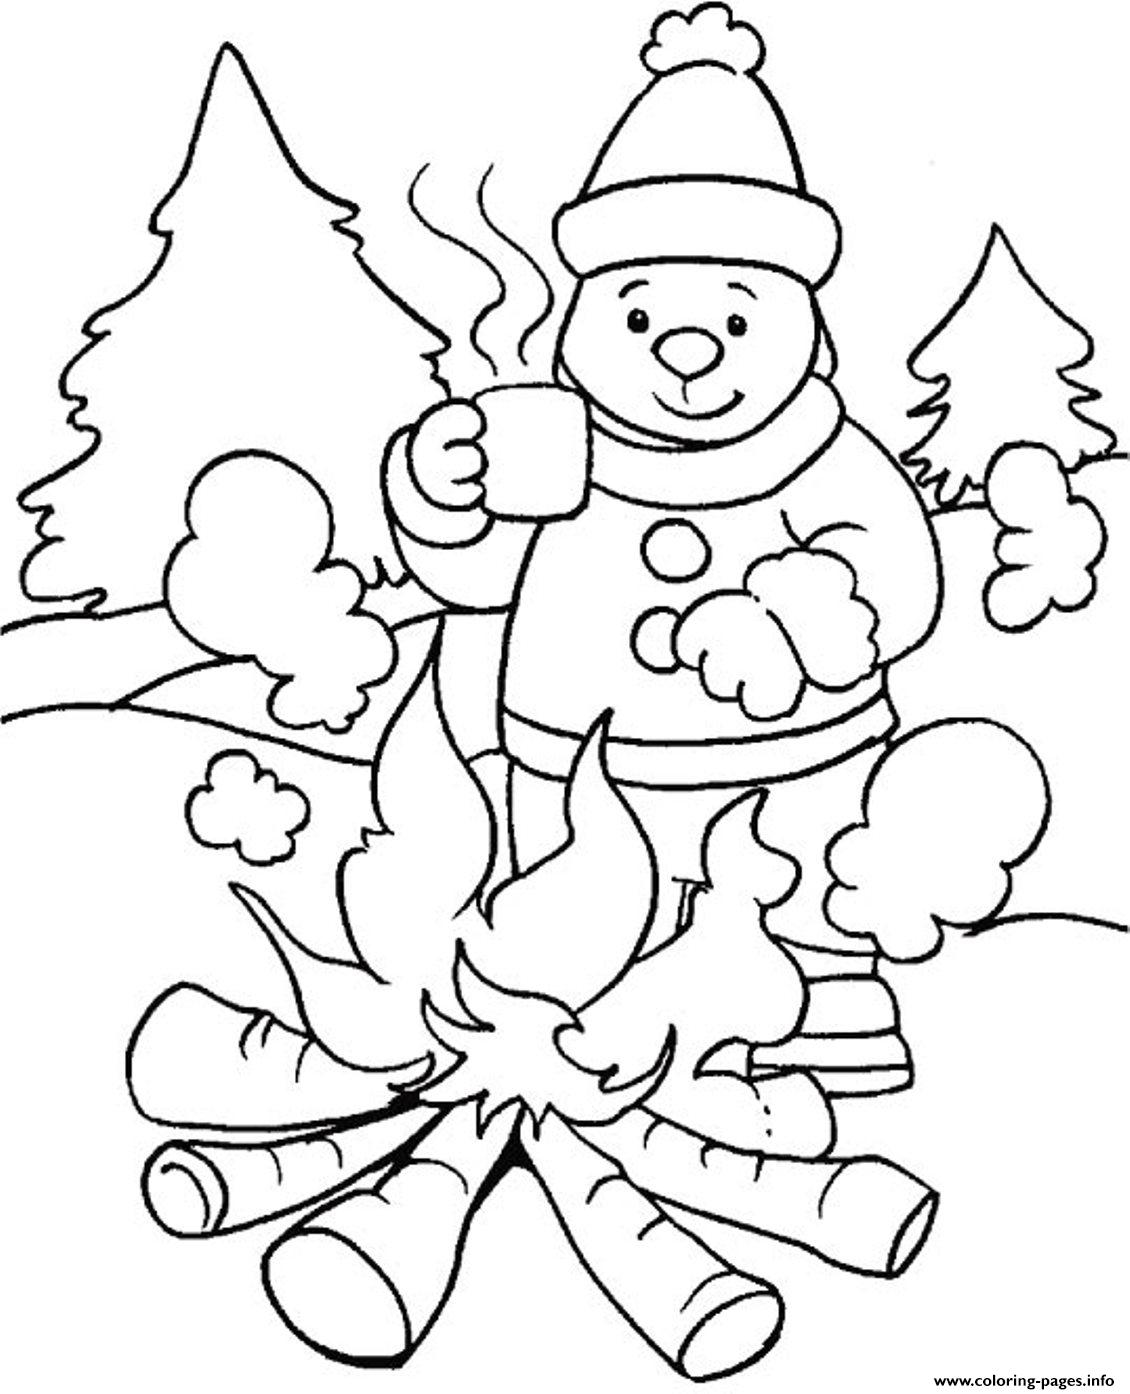 Free winter coloring pages for kids - Warming With Fire In Winter Sfbbd Coloring Pages